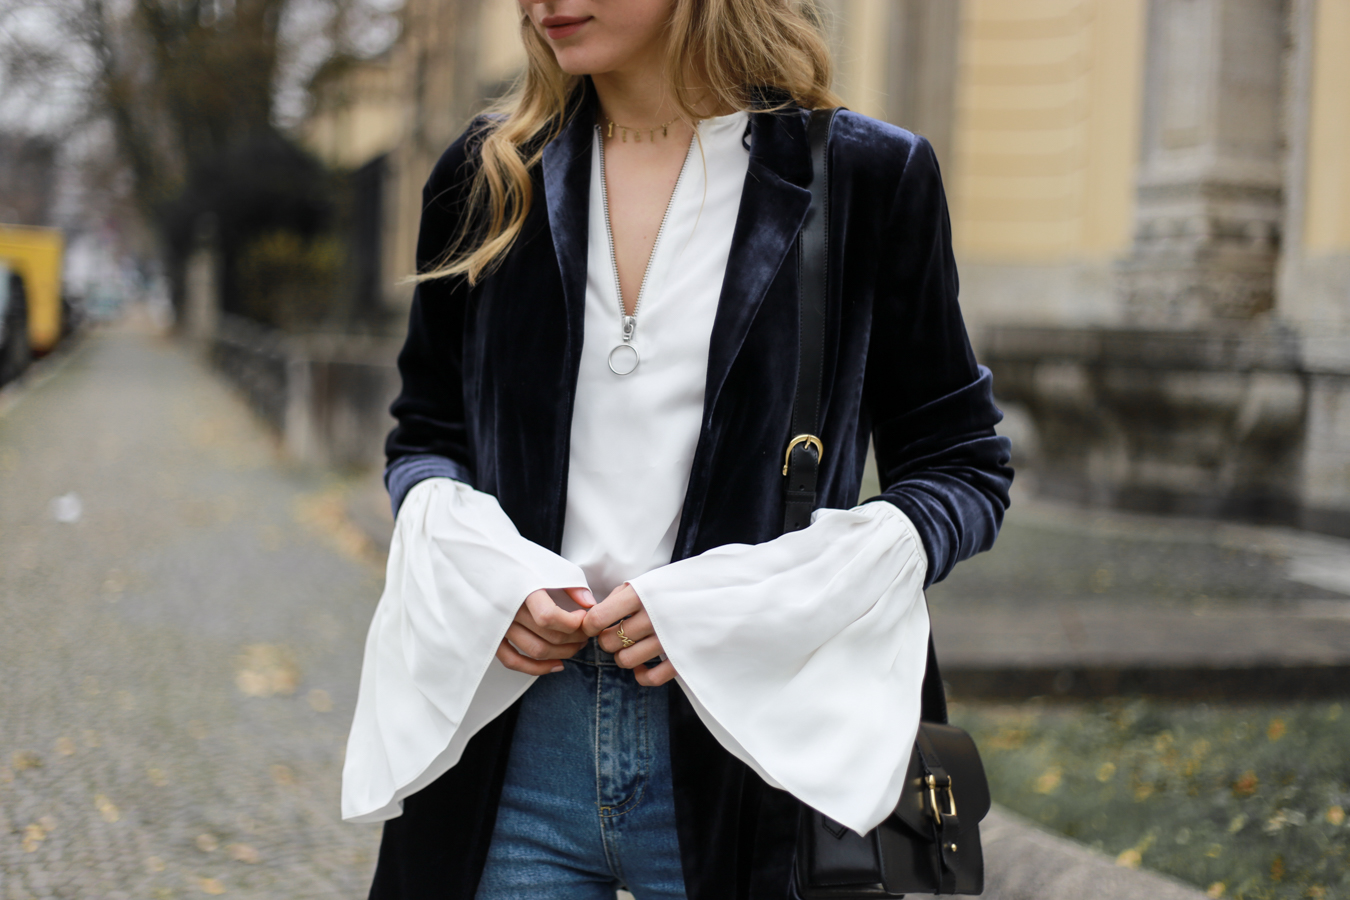 other-stories-velvet-mom-jeans-outfit-livia-auer-6992